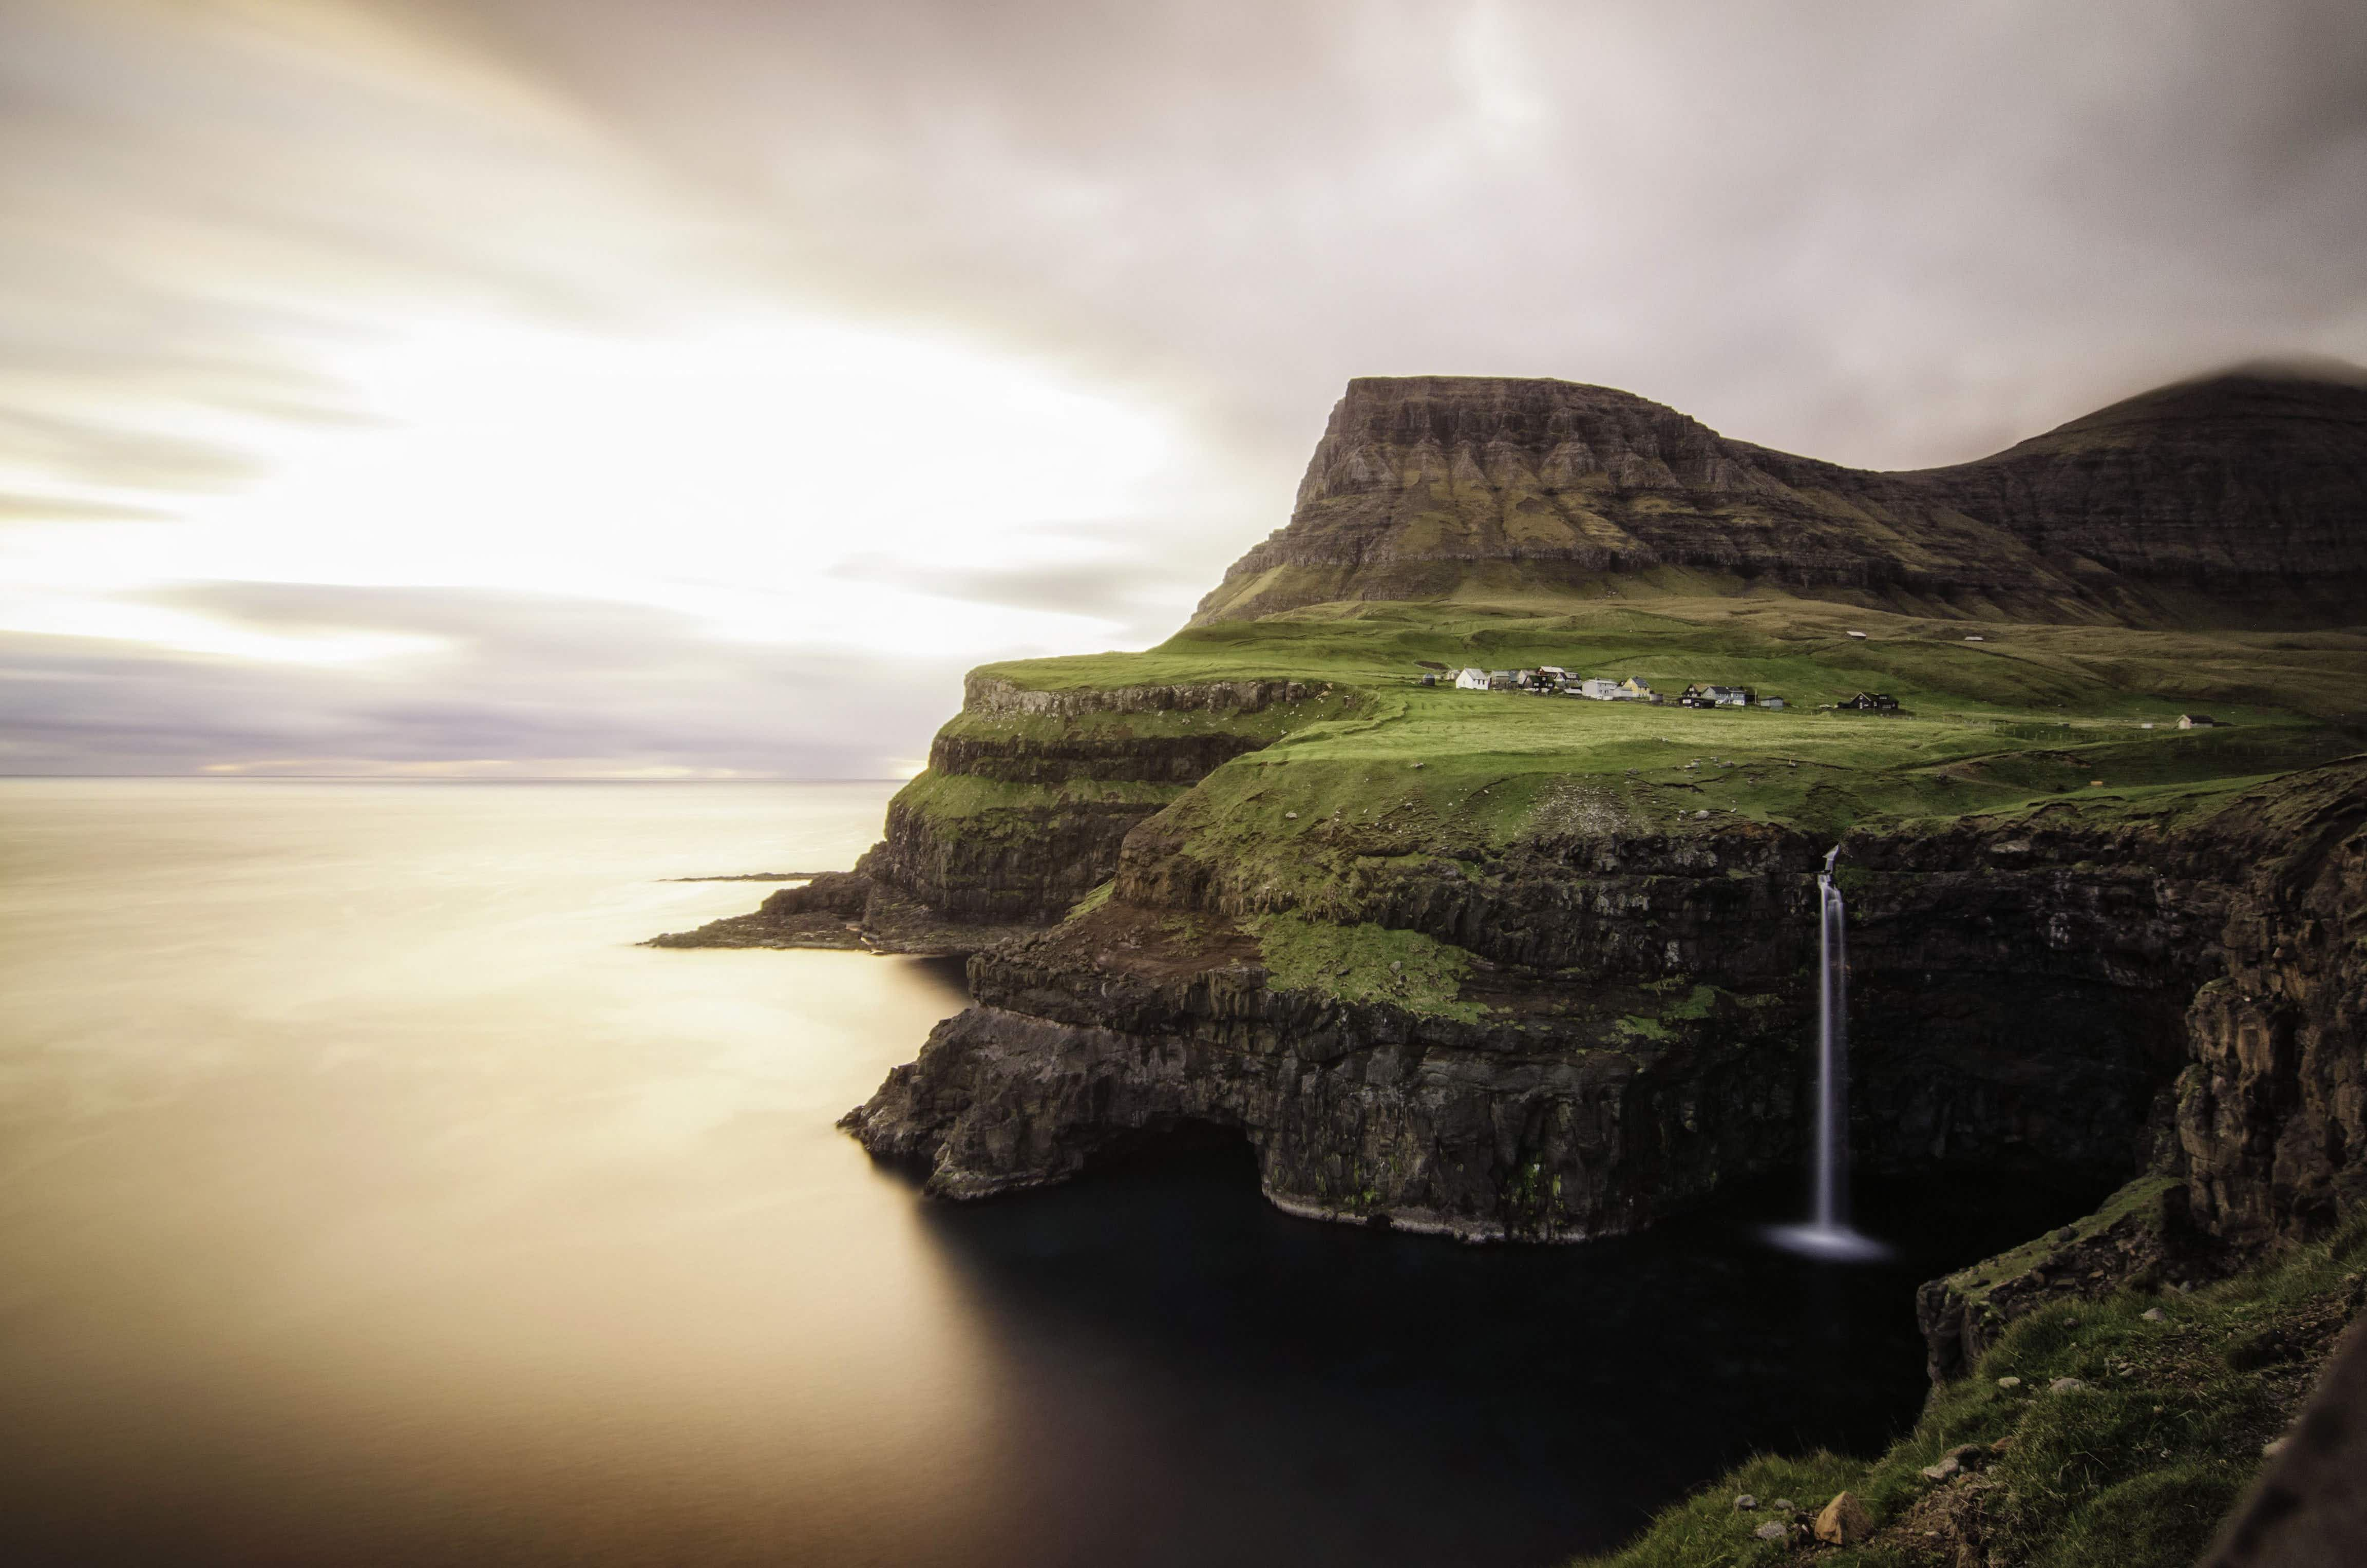 A room with a view - check out this newly opened guesthouse by the Faroe Islands' famous Múlafossur waterfall